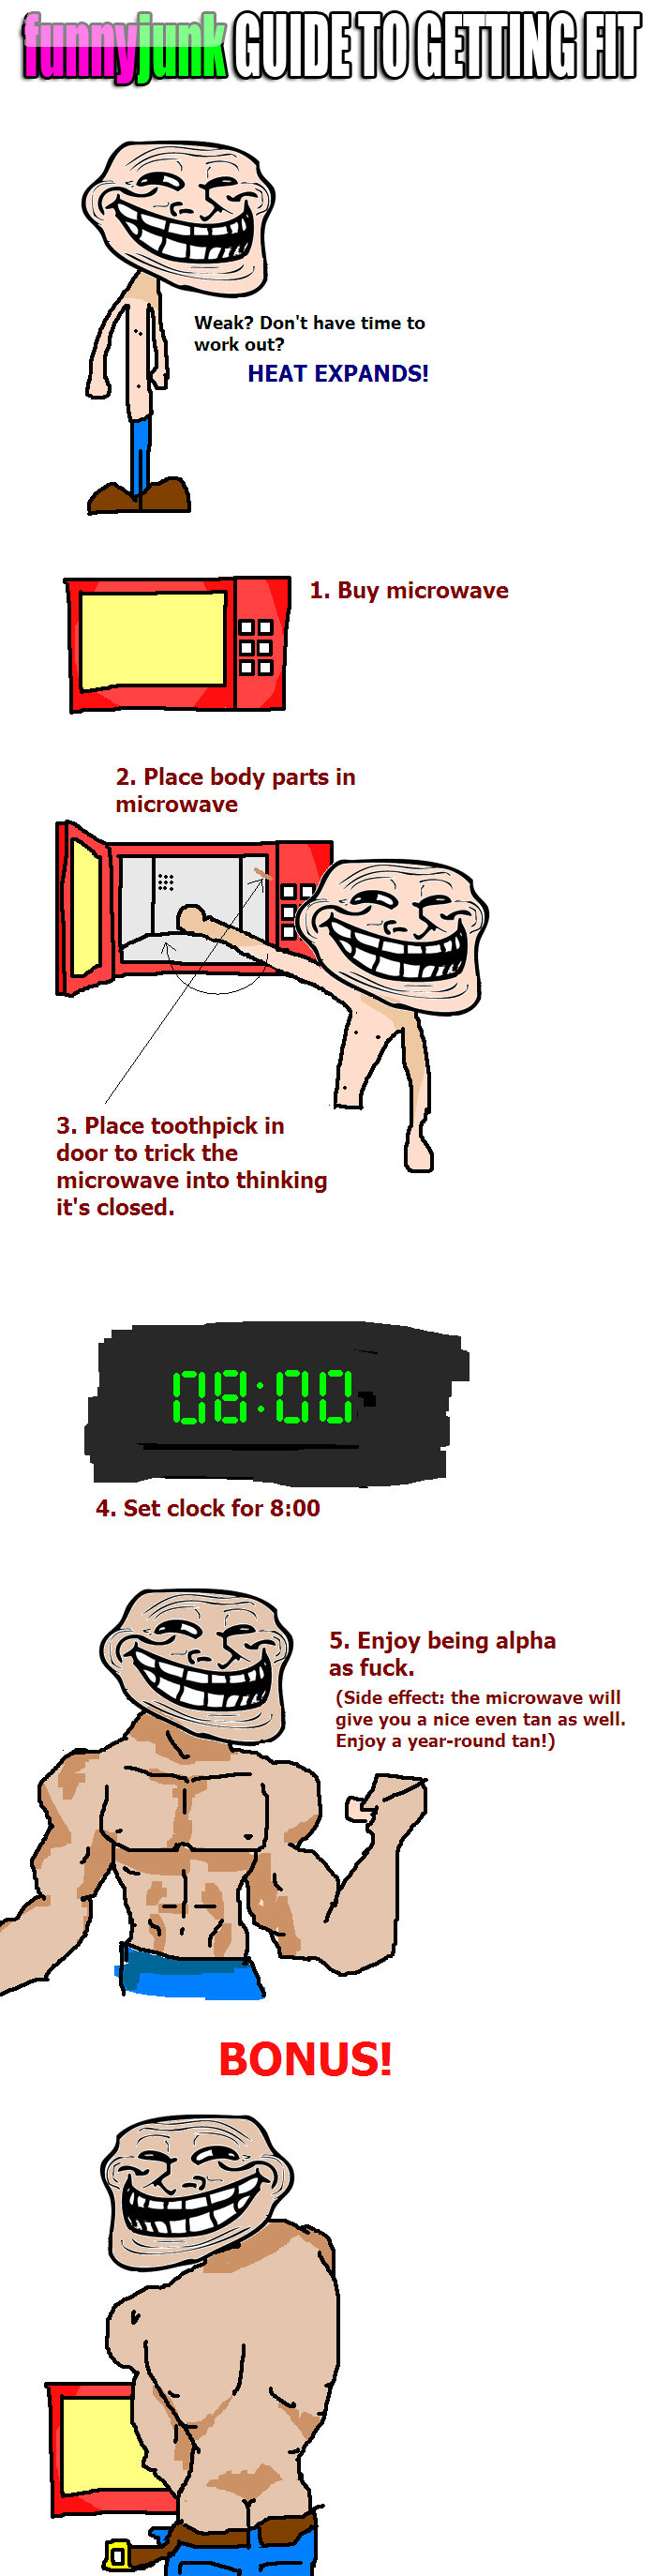 The Terminator Trick. thumb this up if you liked it ;). Weak? Don' t have time to work out? HEAT EXPANDS! L Buy microwave 2. Place body parts in microwave 3. Pl